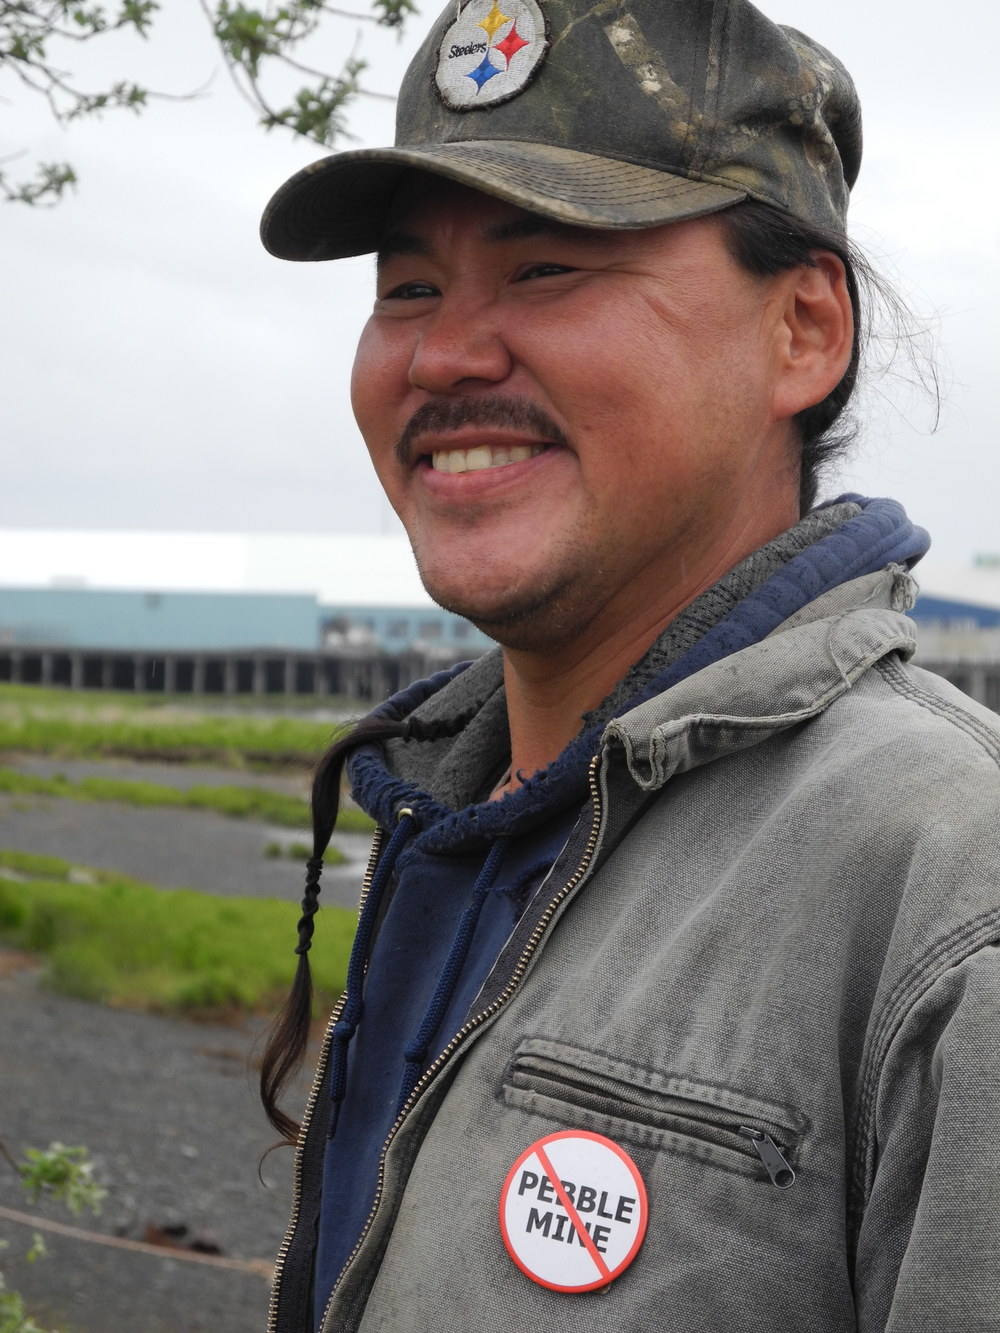 A recent poll shows 80% of the population in Dillingham, Alaska oppose Pebble Mine